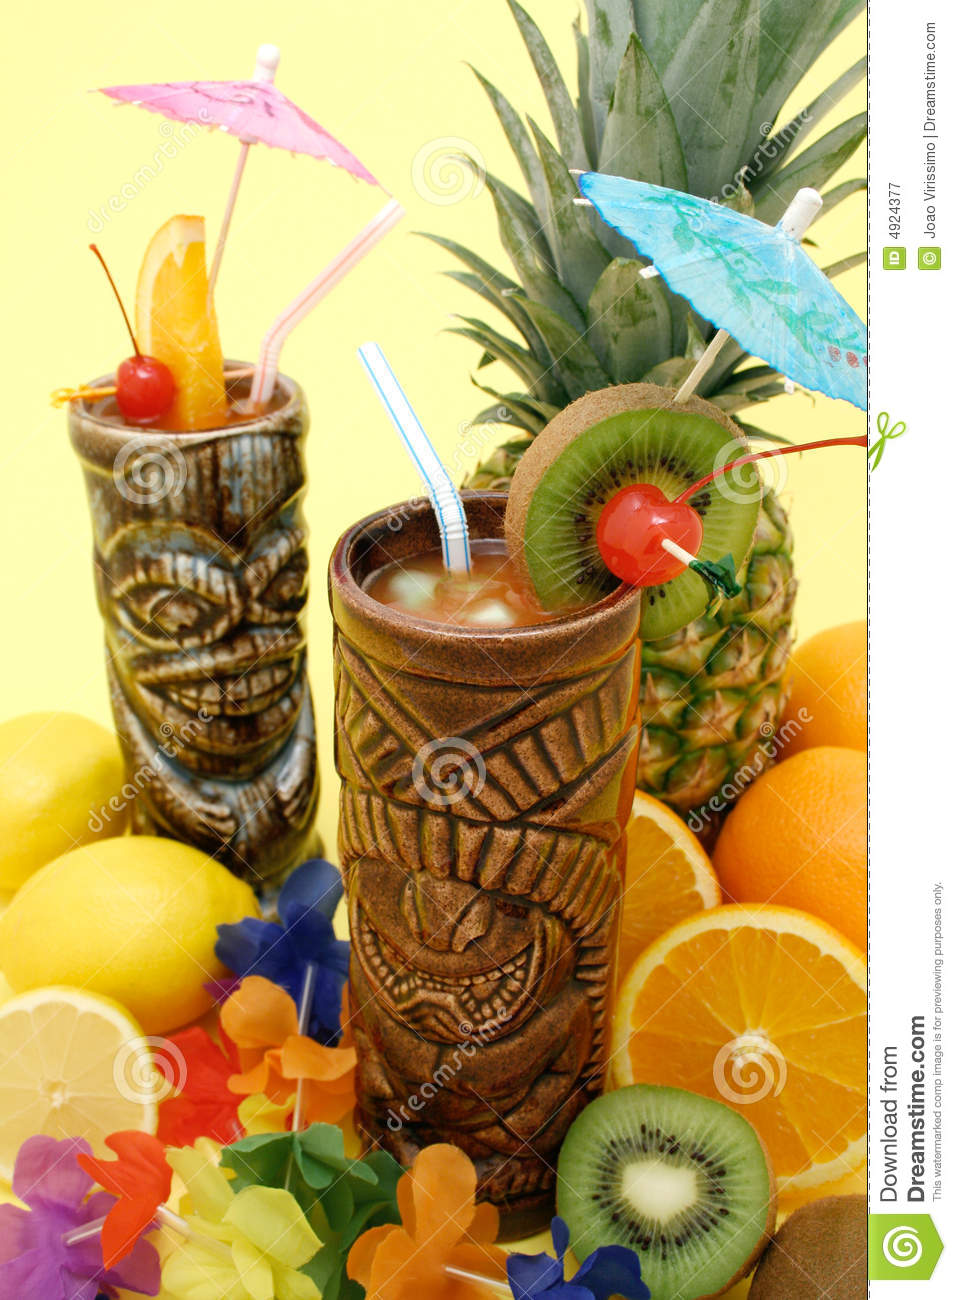 Tropical Drinks and Fruits